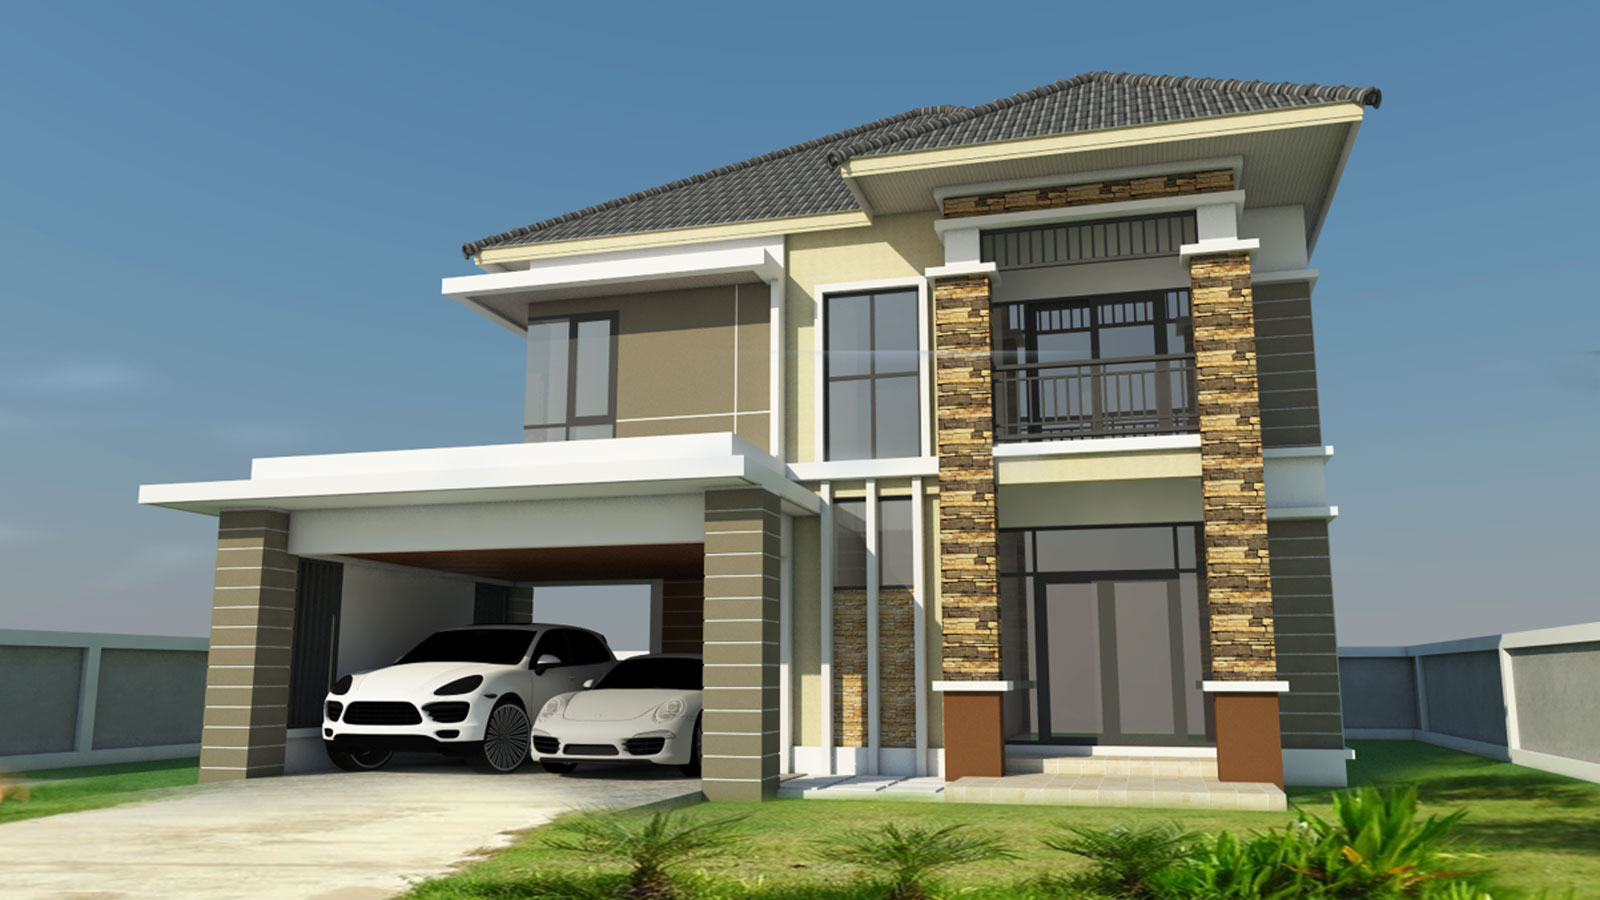 3 bedroom 3 bathroom absolute quality home for sale in for 9 bedroom homes for sale